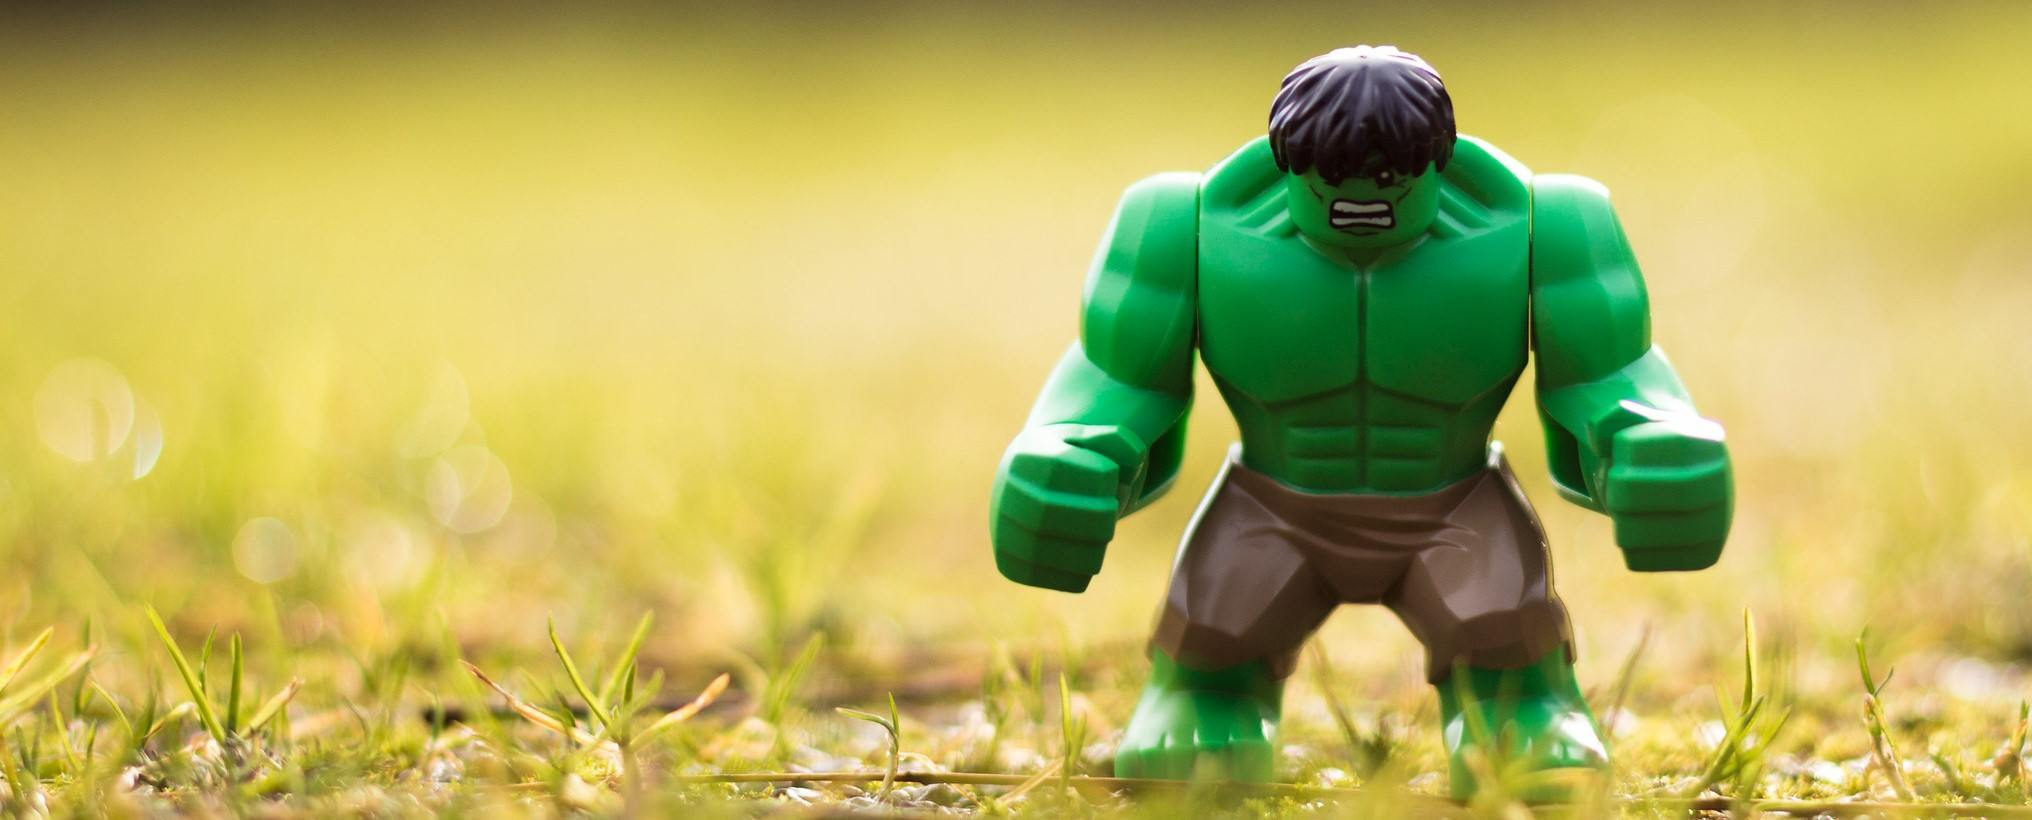 A photo of LEGO Hulk, who I don't think eats protein to look like that.